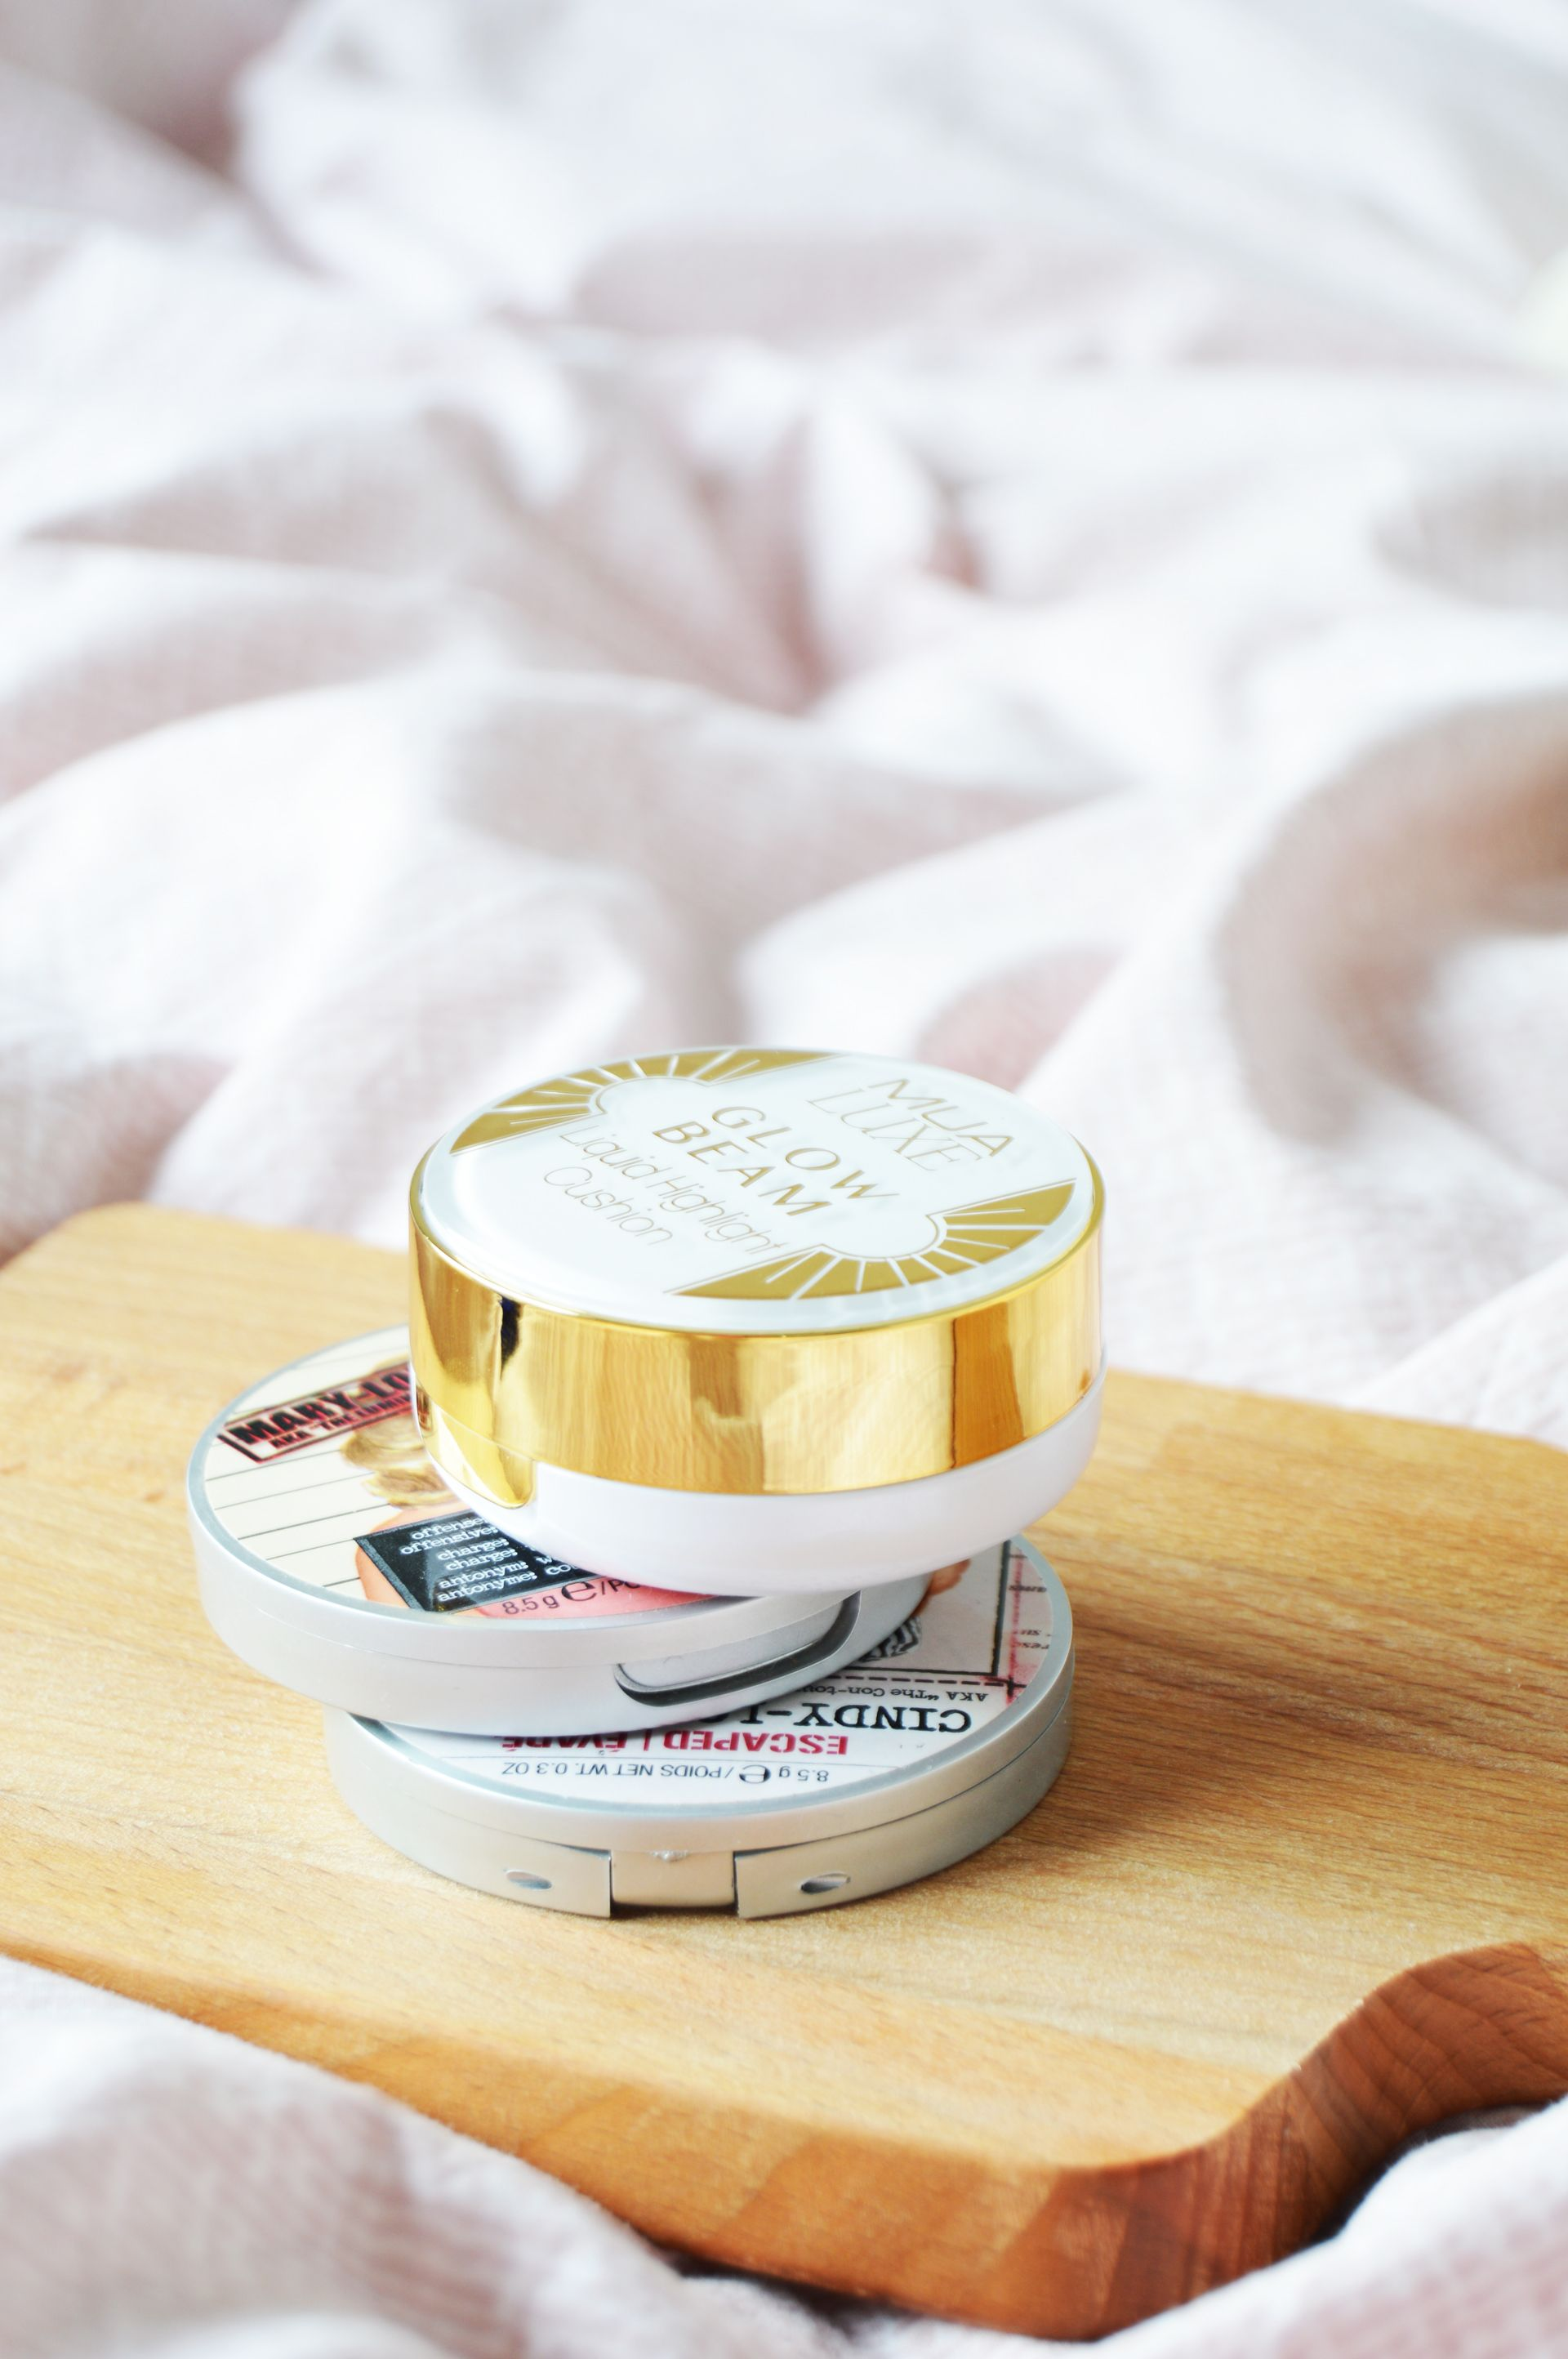 MUA Luxe Glow Beam Highlight Cushion Gold will enhance the natural radiance with a beautiful golden glow. You can get the extra glow with the help of a budget highlighter that will give the most beautiful glowy complexion.